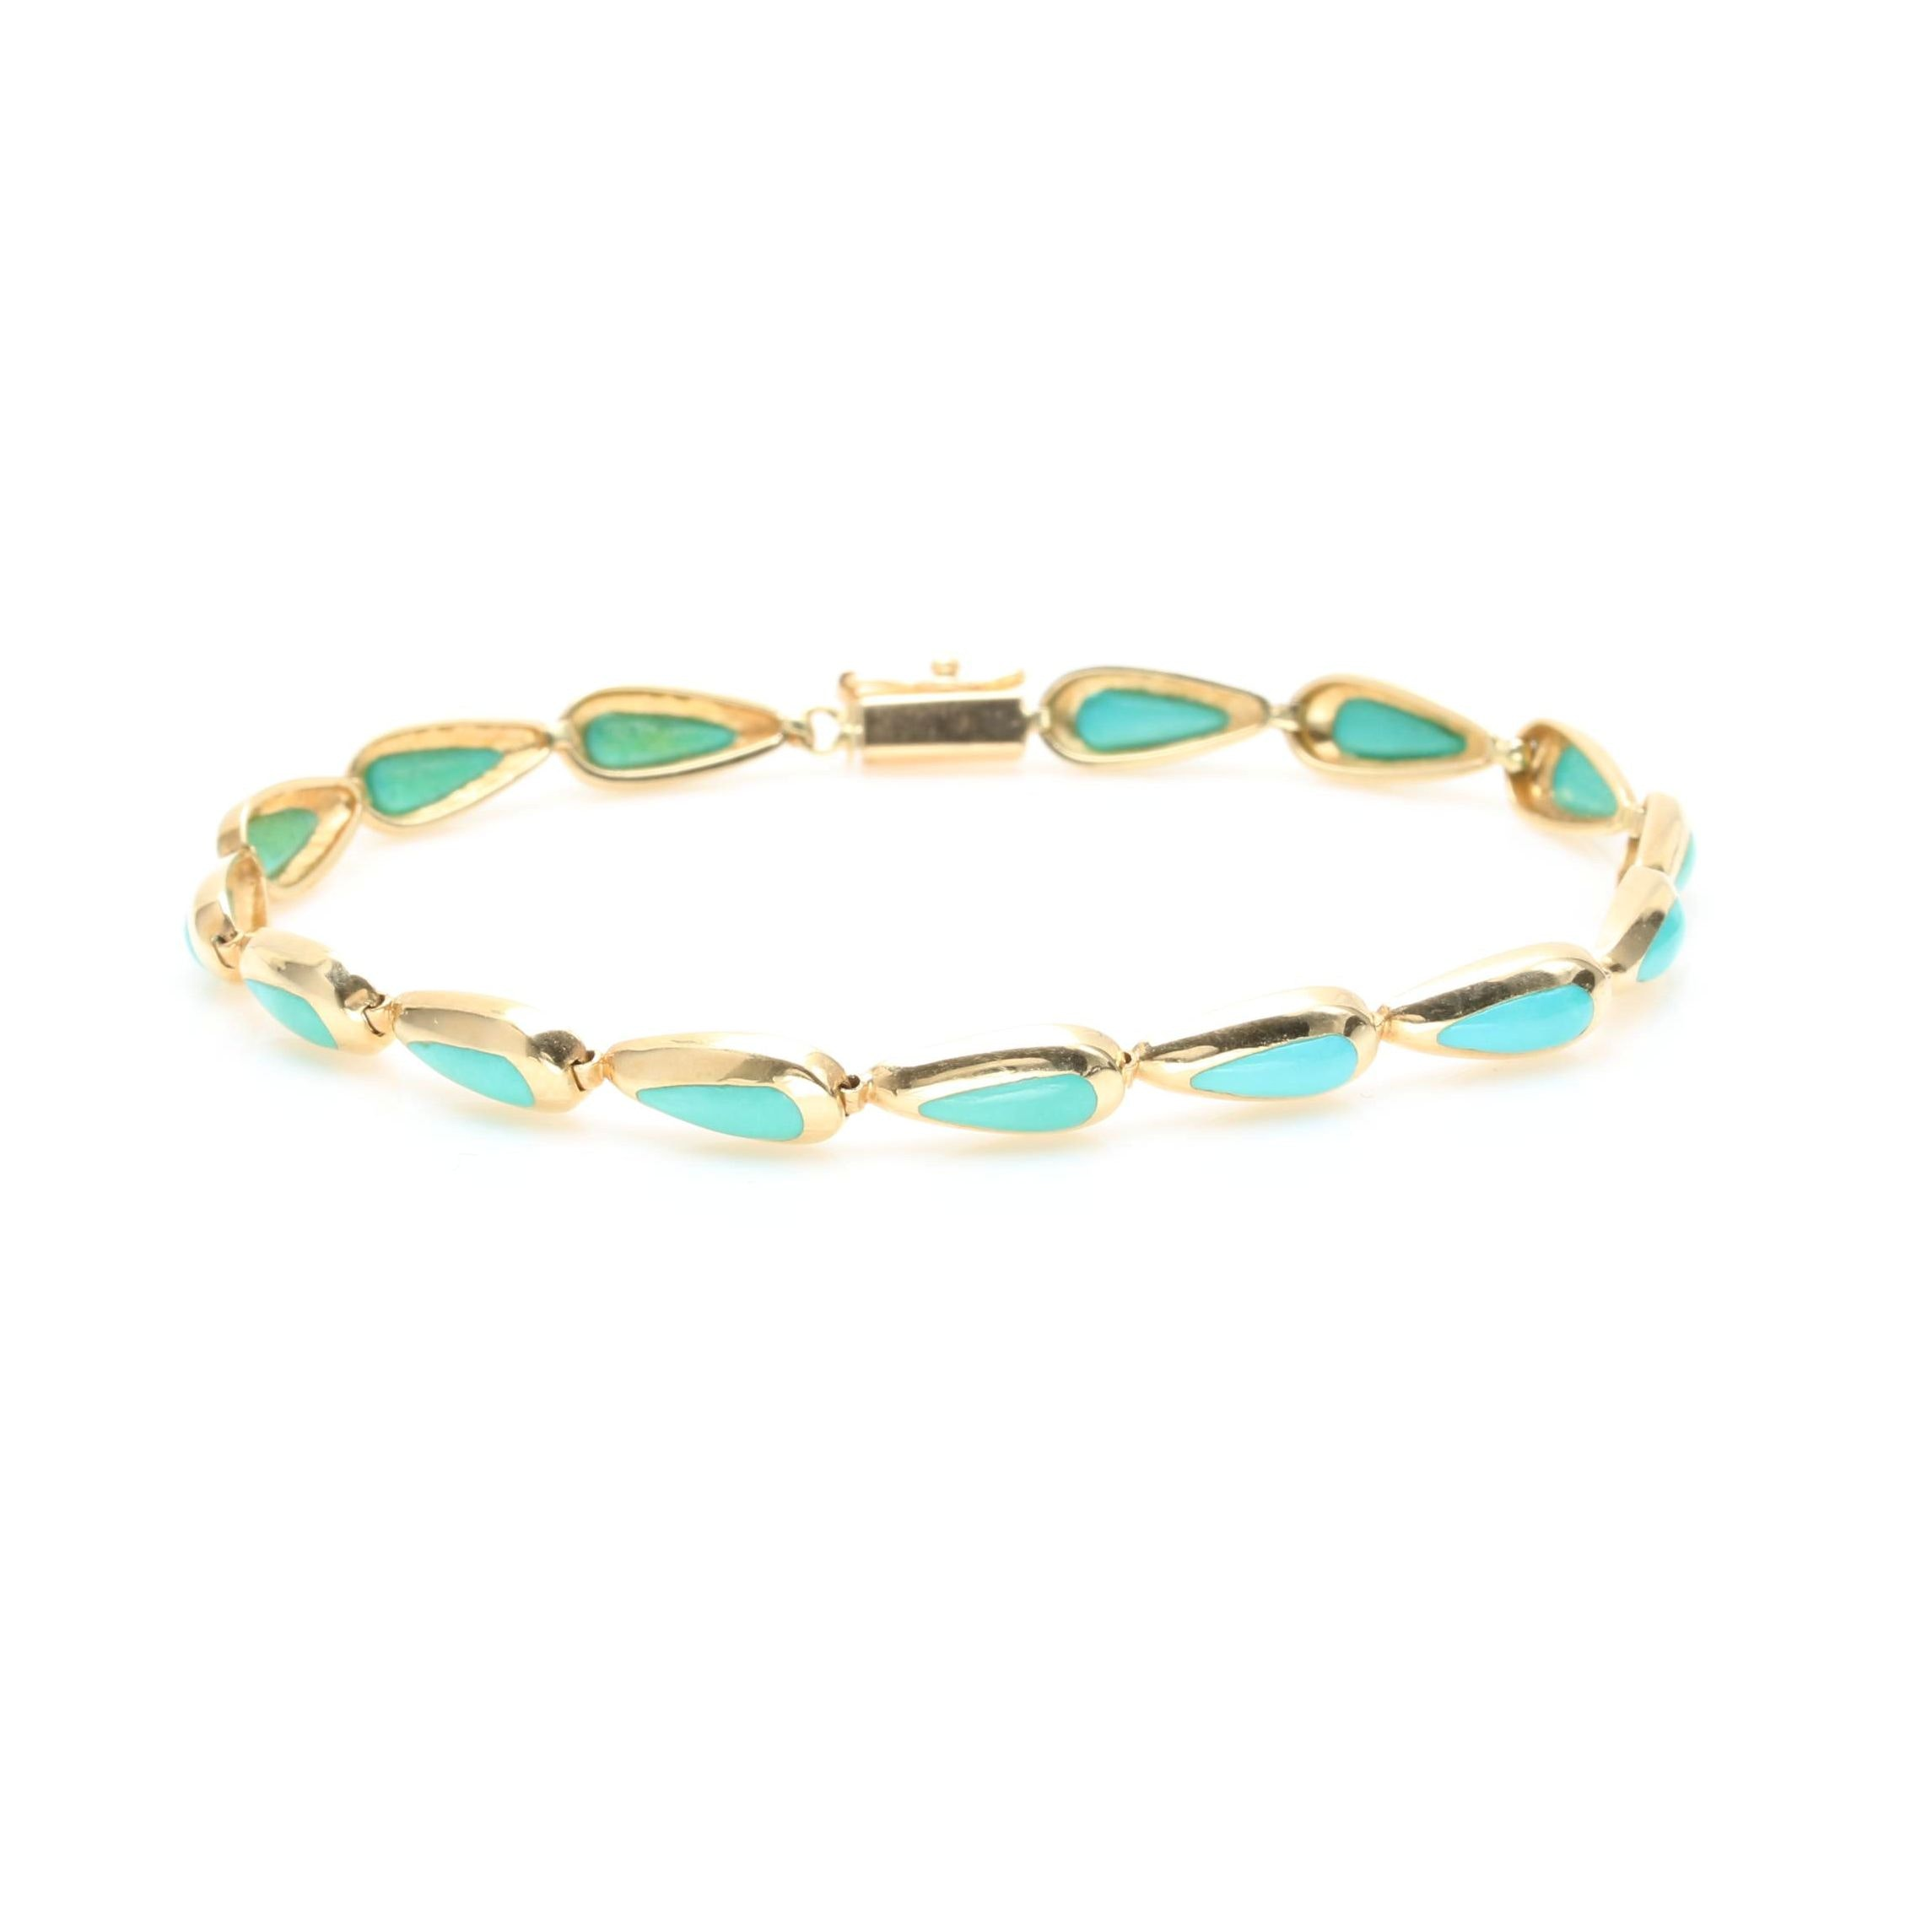 14K Yellow Gold Turquoise Link Bracelet